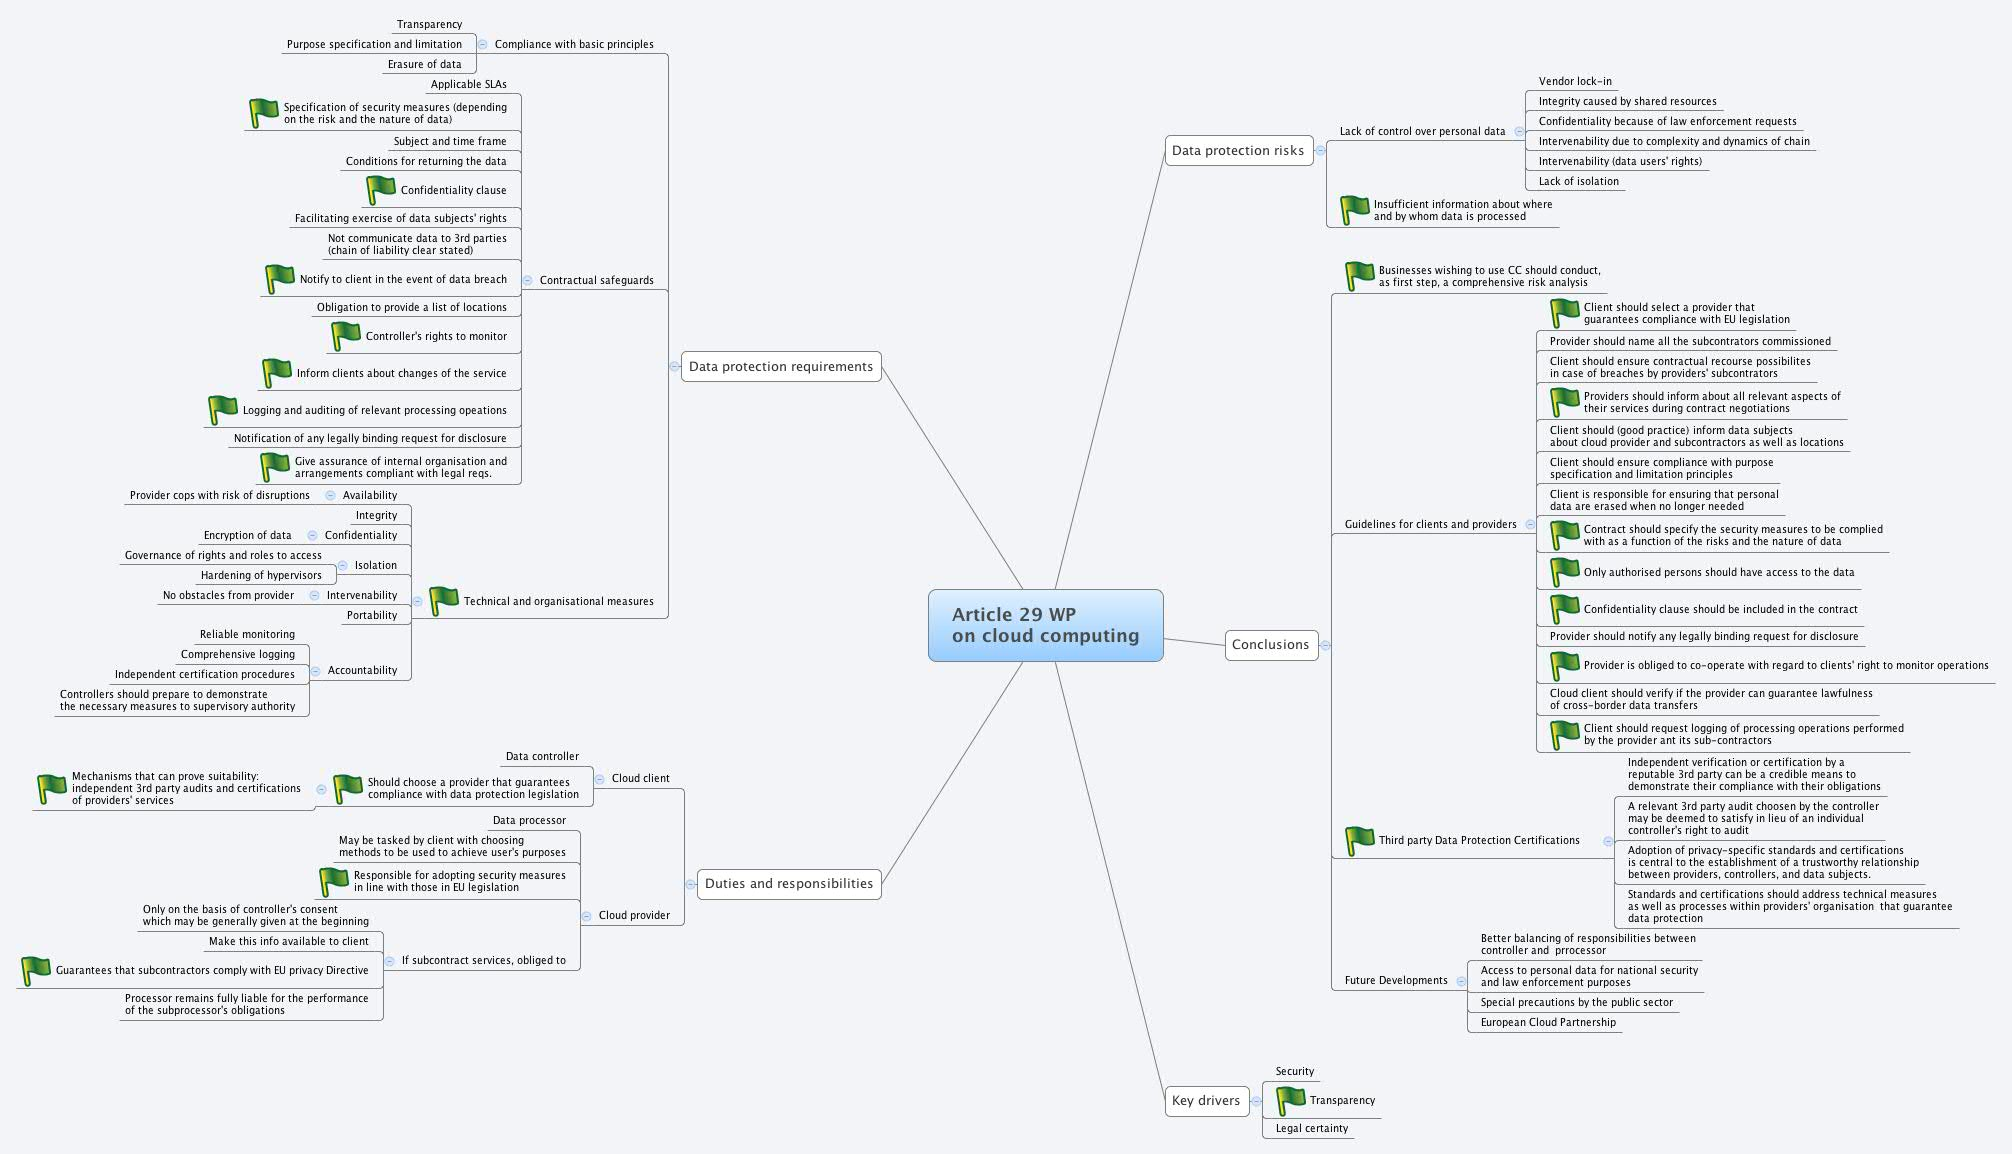 Article 29 Wp On Cloud Computing Xmind Mind Mapping Software